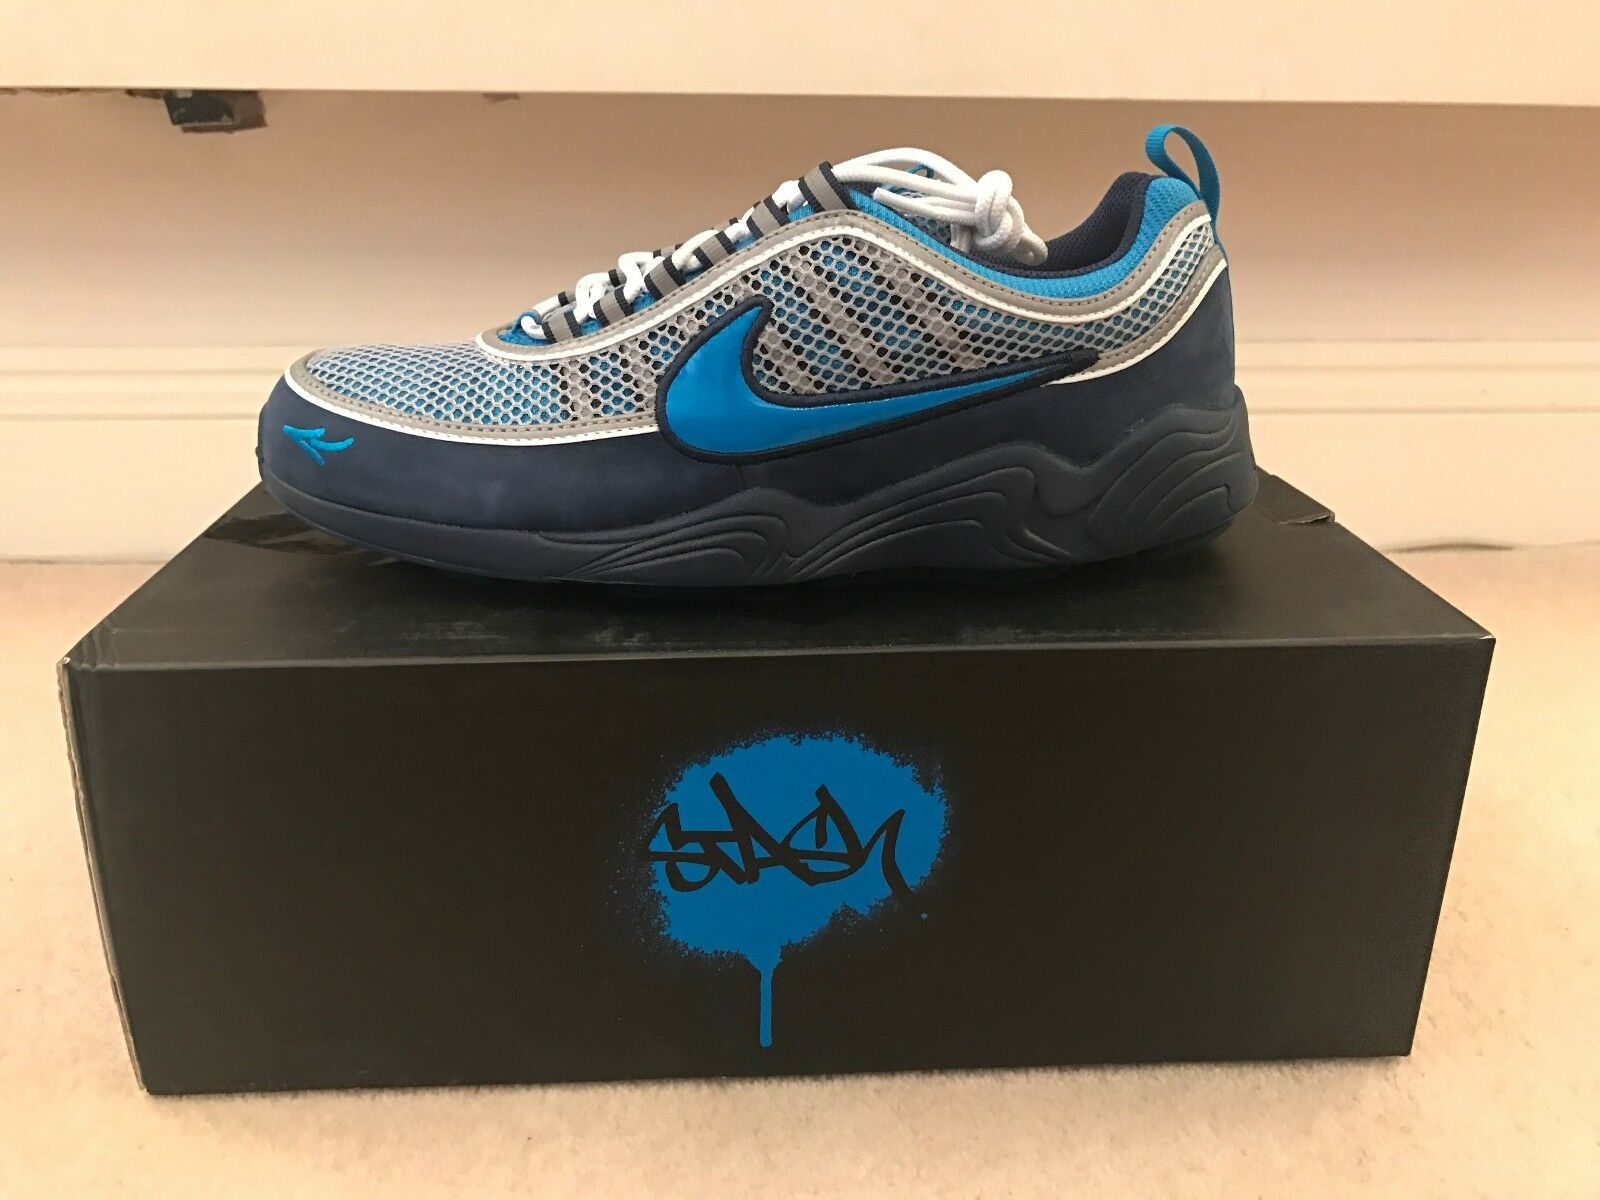 d1b0268bcc41e 2017 NIKE AIR ZOOM SPIRIDON - STASH - BLUE / CYAN - / US 11.5. Nike Mens  Air Max 1 Tour ...